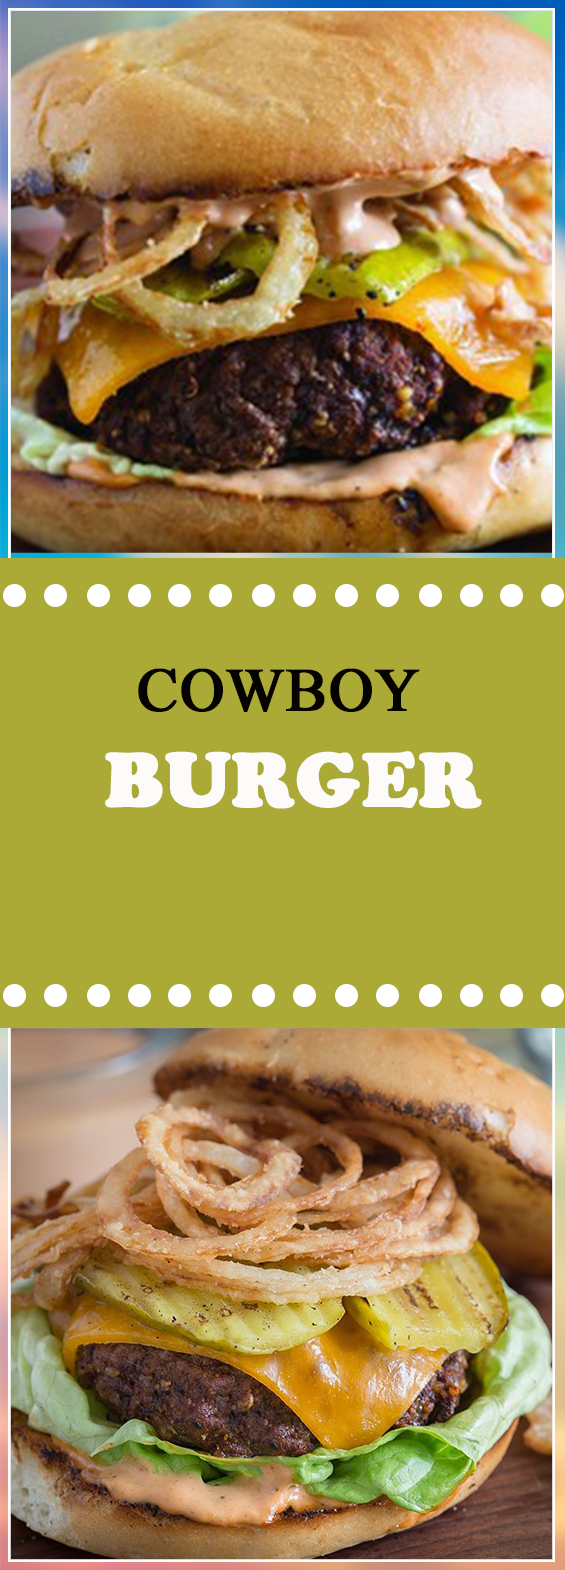 COWBOY BURGER RECIPE WITH GRILLED PICKLES AND CRISPY ONION ...